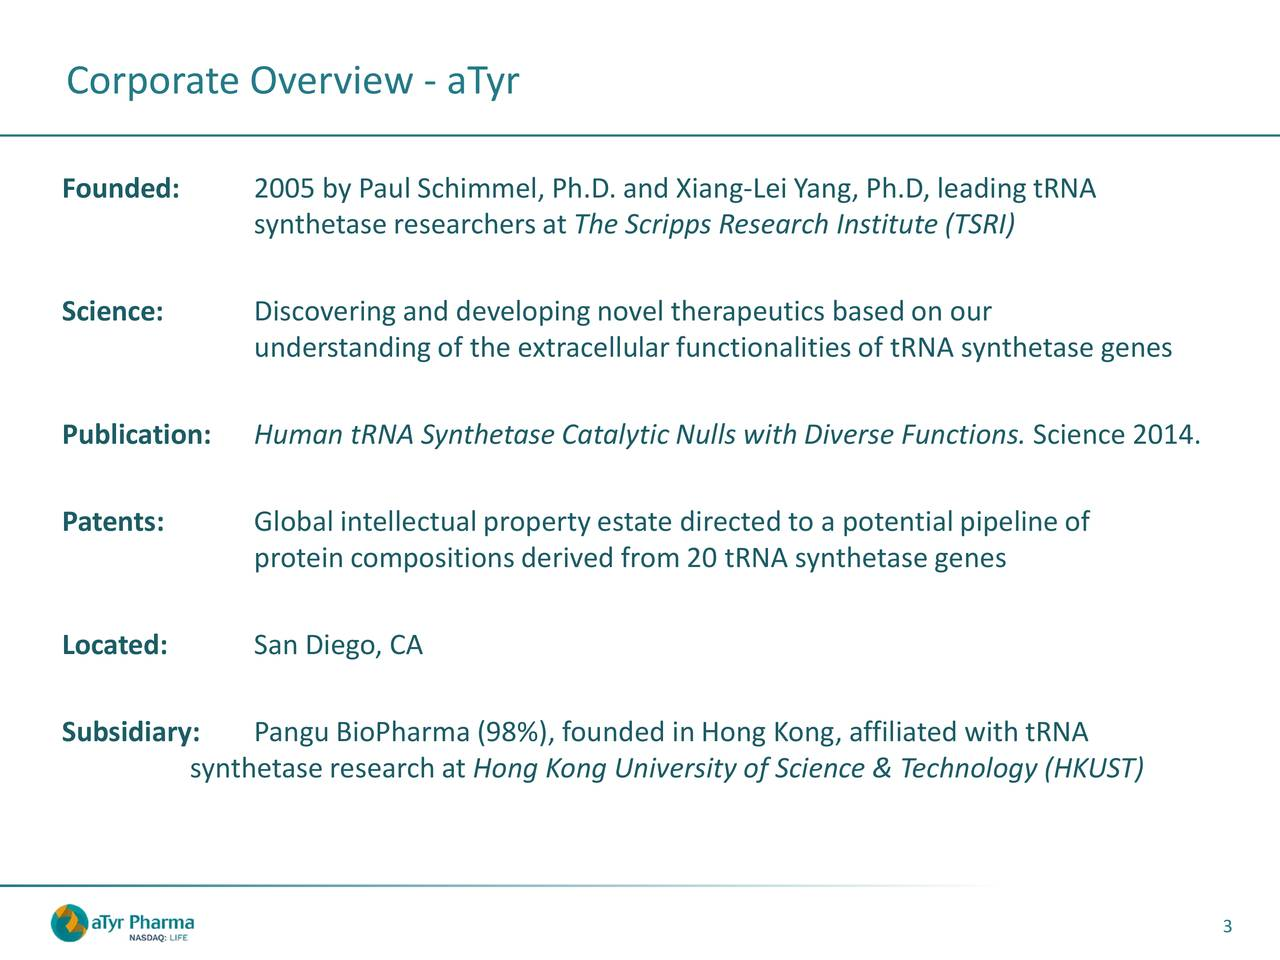 Founded: 2005 by Paul Schimmel, Ph.D. and Xiang-Lei Yang, Ph.D, leading tRNA synthetase researchersat The Scripps Research Institute (TSRI) Science: Discovering and developingnovel therapeutics based on our understandingof the extracellular functionalities of tRNA synthetase genes Publication: Human tRNA Synthetase Catalytic Nulls with Diverse Functions. Science 2014. Patents: Global intellectual property estate directed to a potential pipeline of protein compositions derived from 20 tRNA synthetase genes Located: San Diego, CA Subsidiary: Pangu BioPharma (98%), founded in Hong Kong, affiliated with tRNA synthetase research atHong Kong University of Science & Technology (HKUST) 3